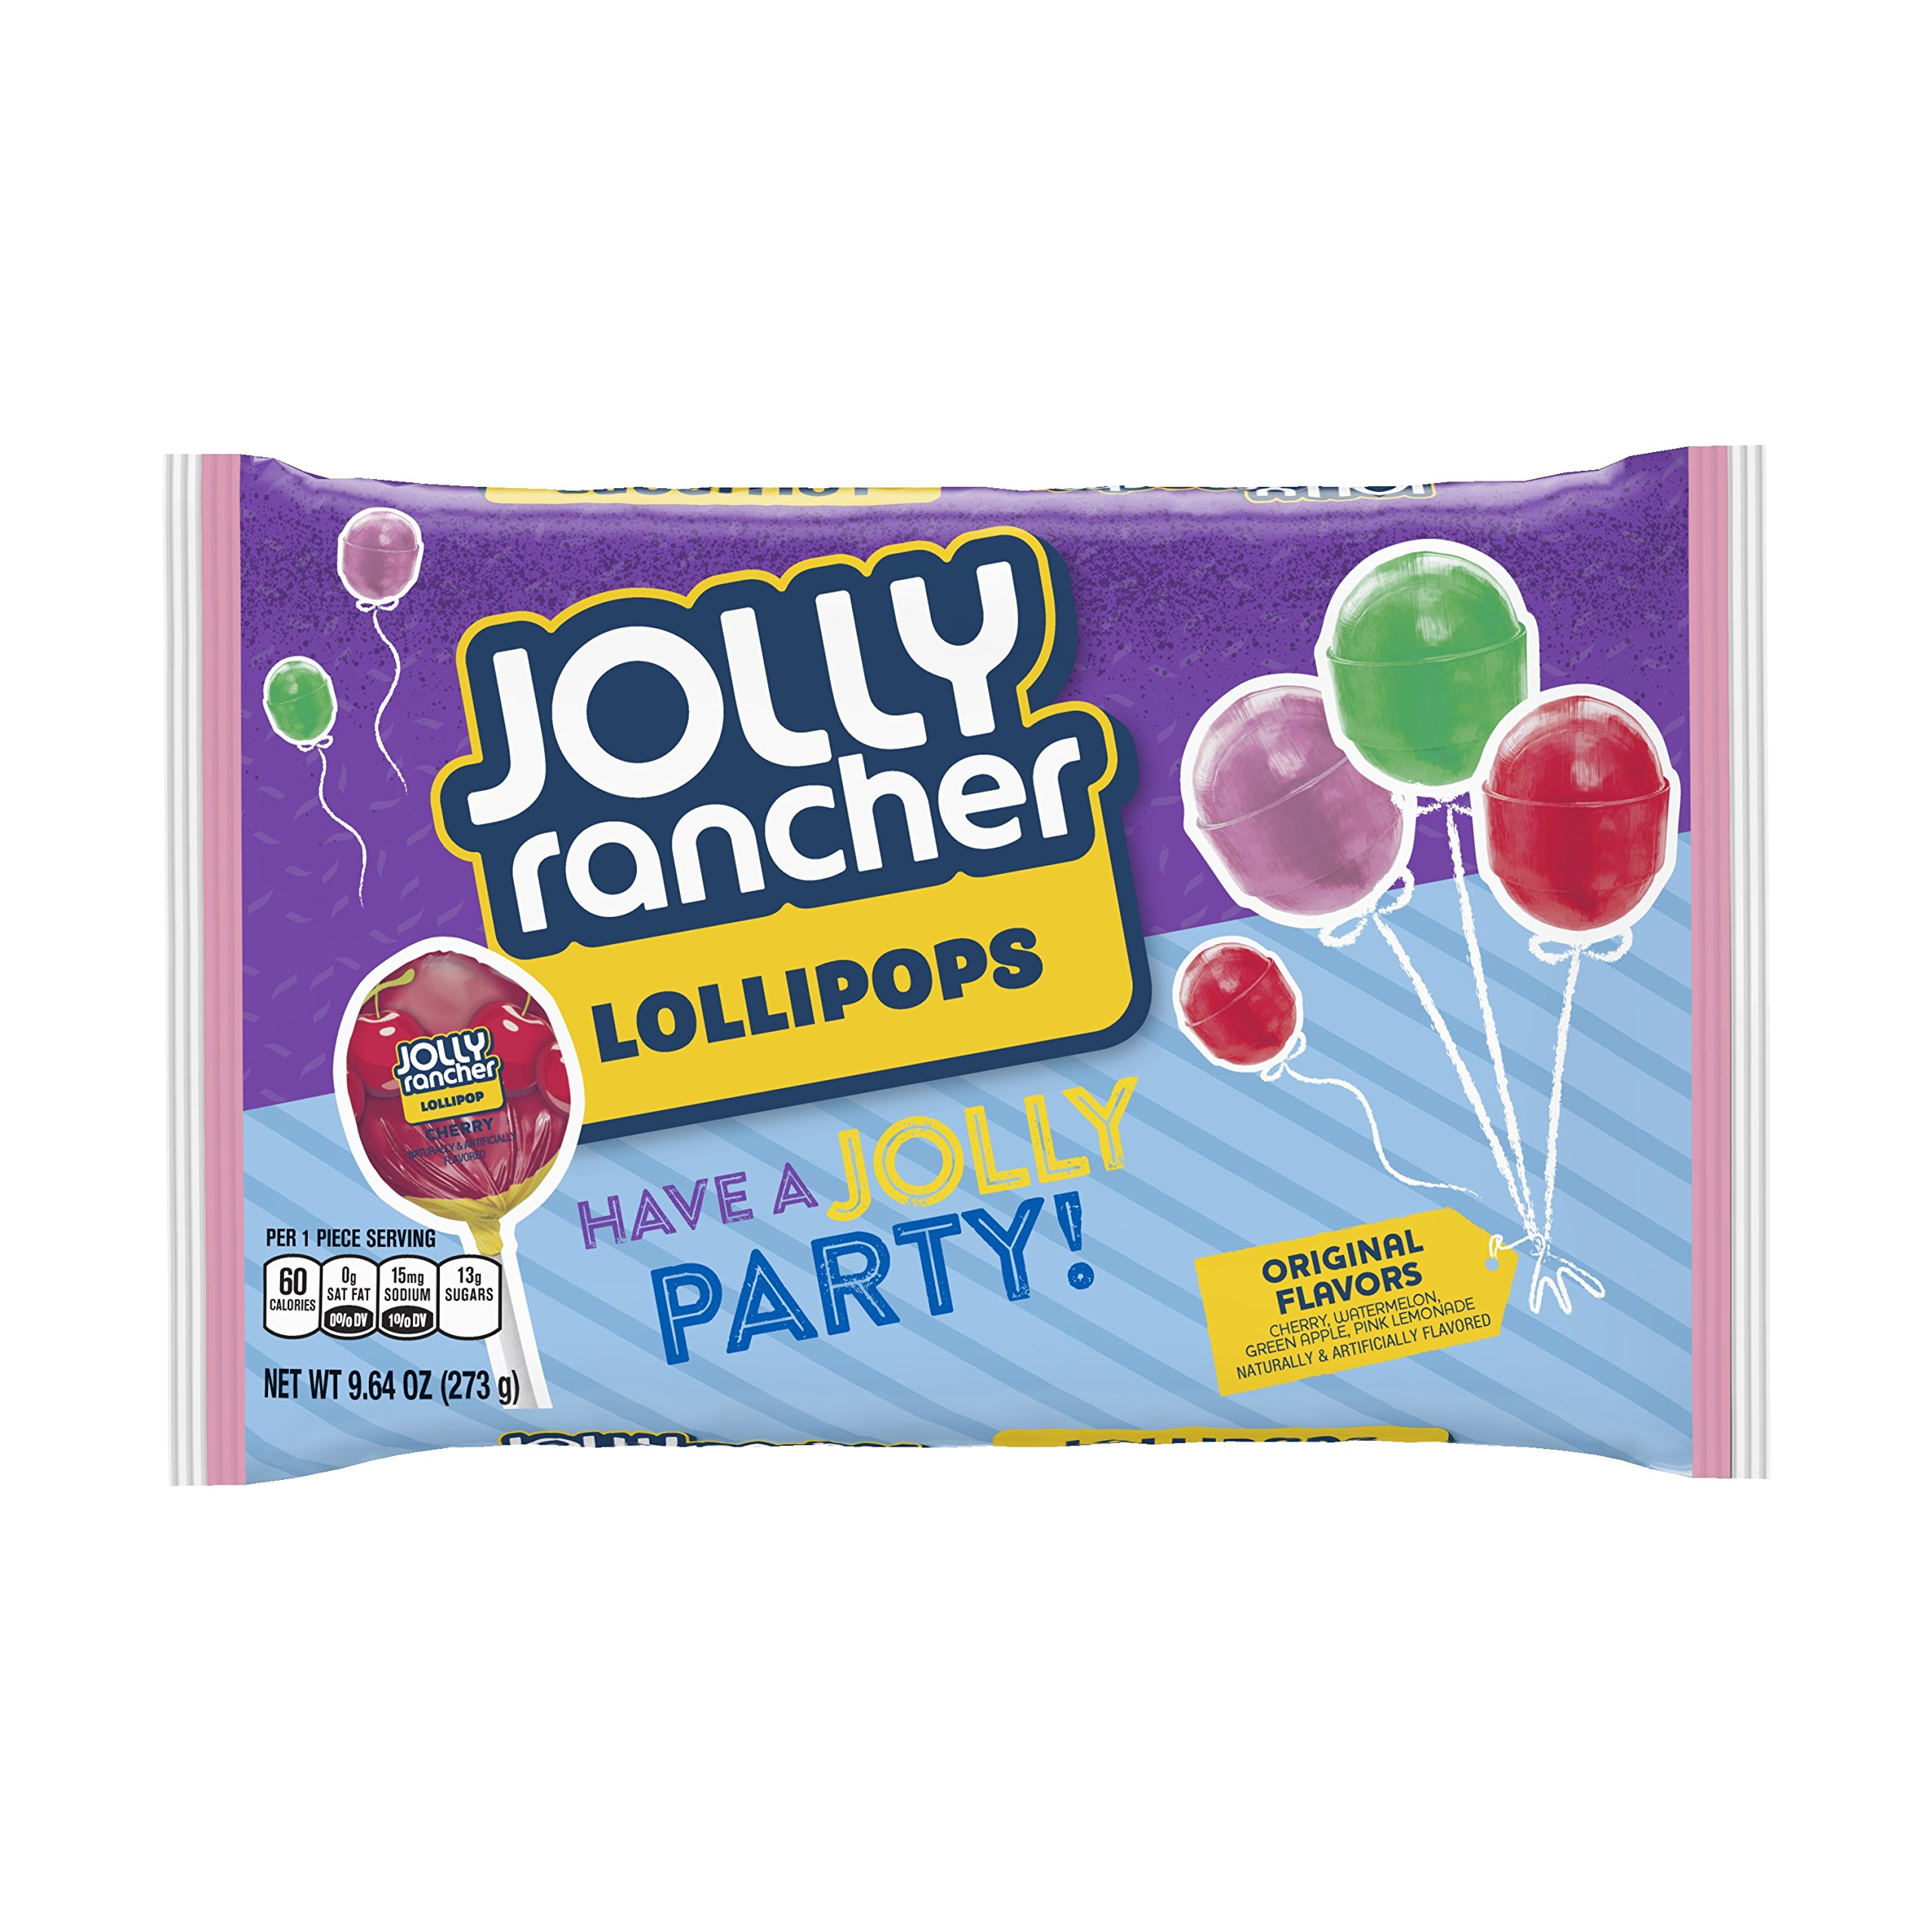 JOLLY RANCHER Birthday Lollipops, Assorted Flavors (Cherry, Watermelon, Green Apple, Pink Lemonade), 9.64 Ounce (Pack of 12) by Jolly Rancher